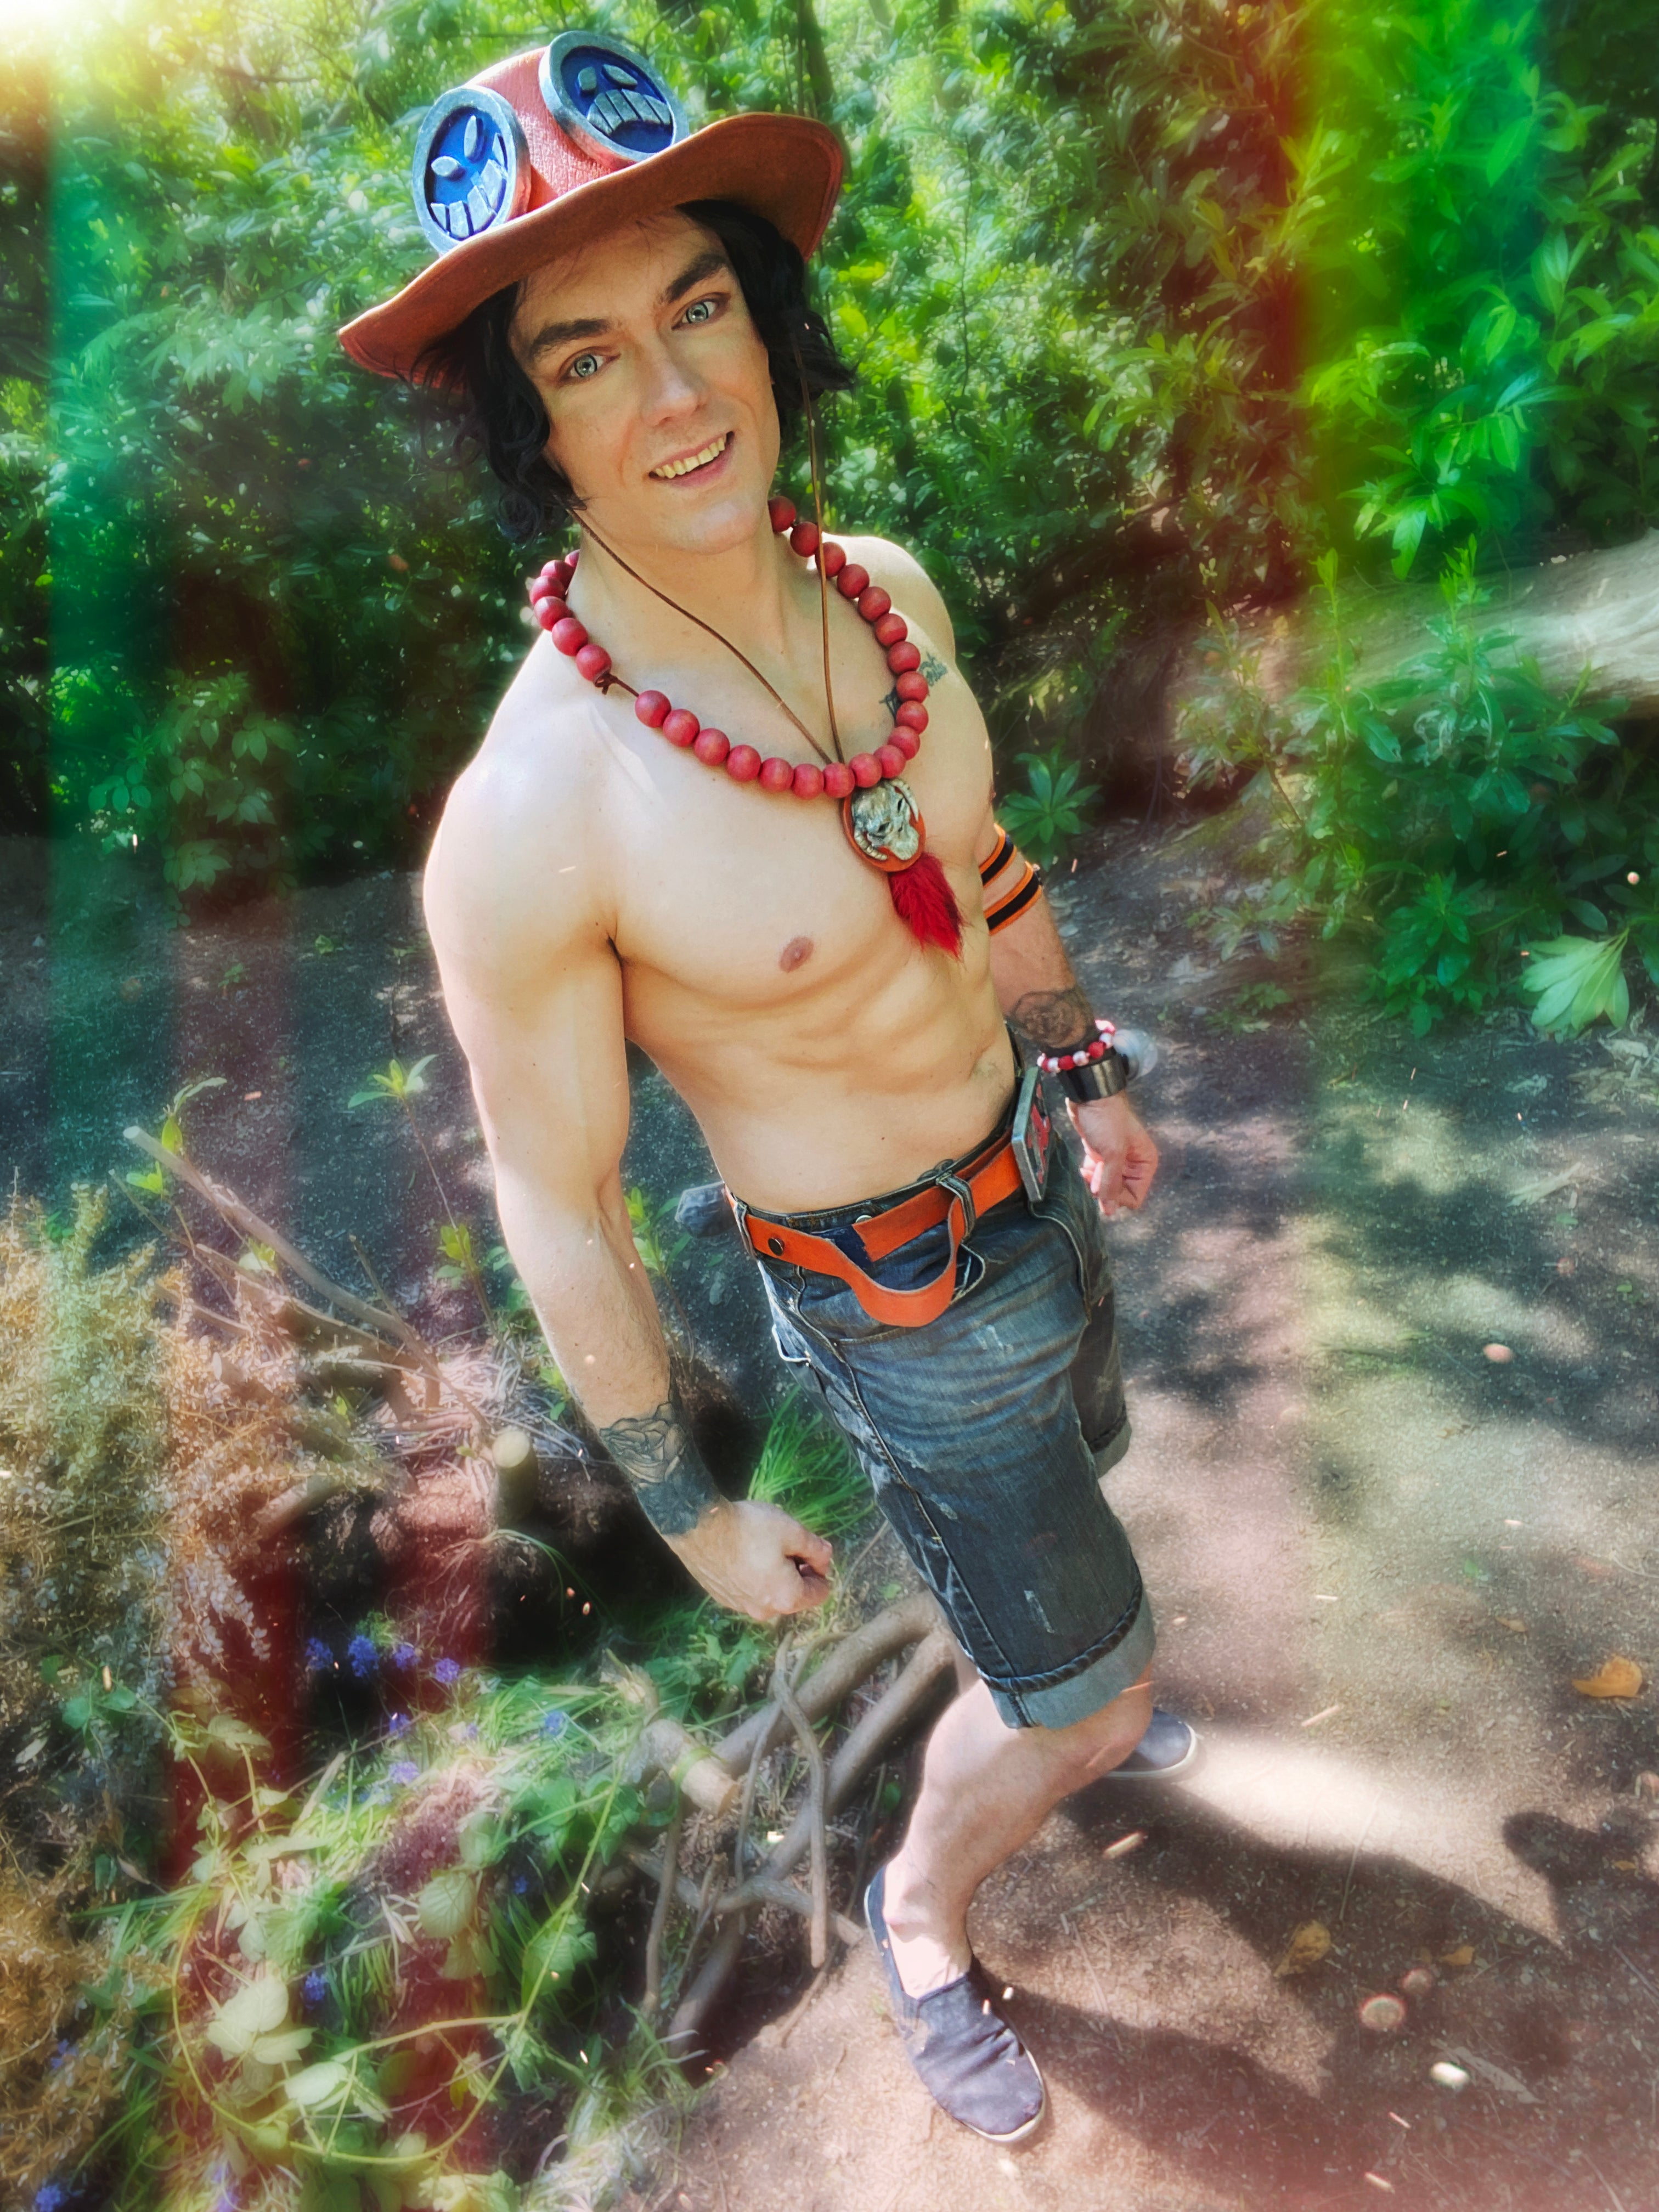 Portgas D. Ace Cosplay From the One Piece Anime - Ripped Firefist Ace Cosplay